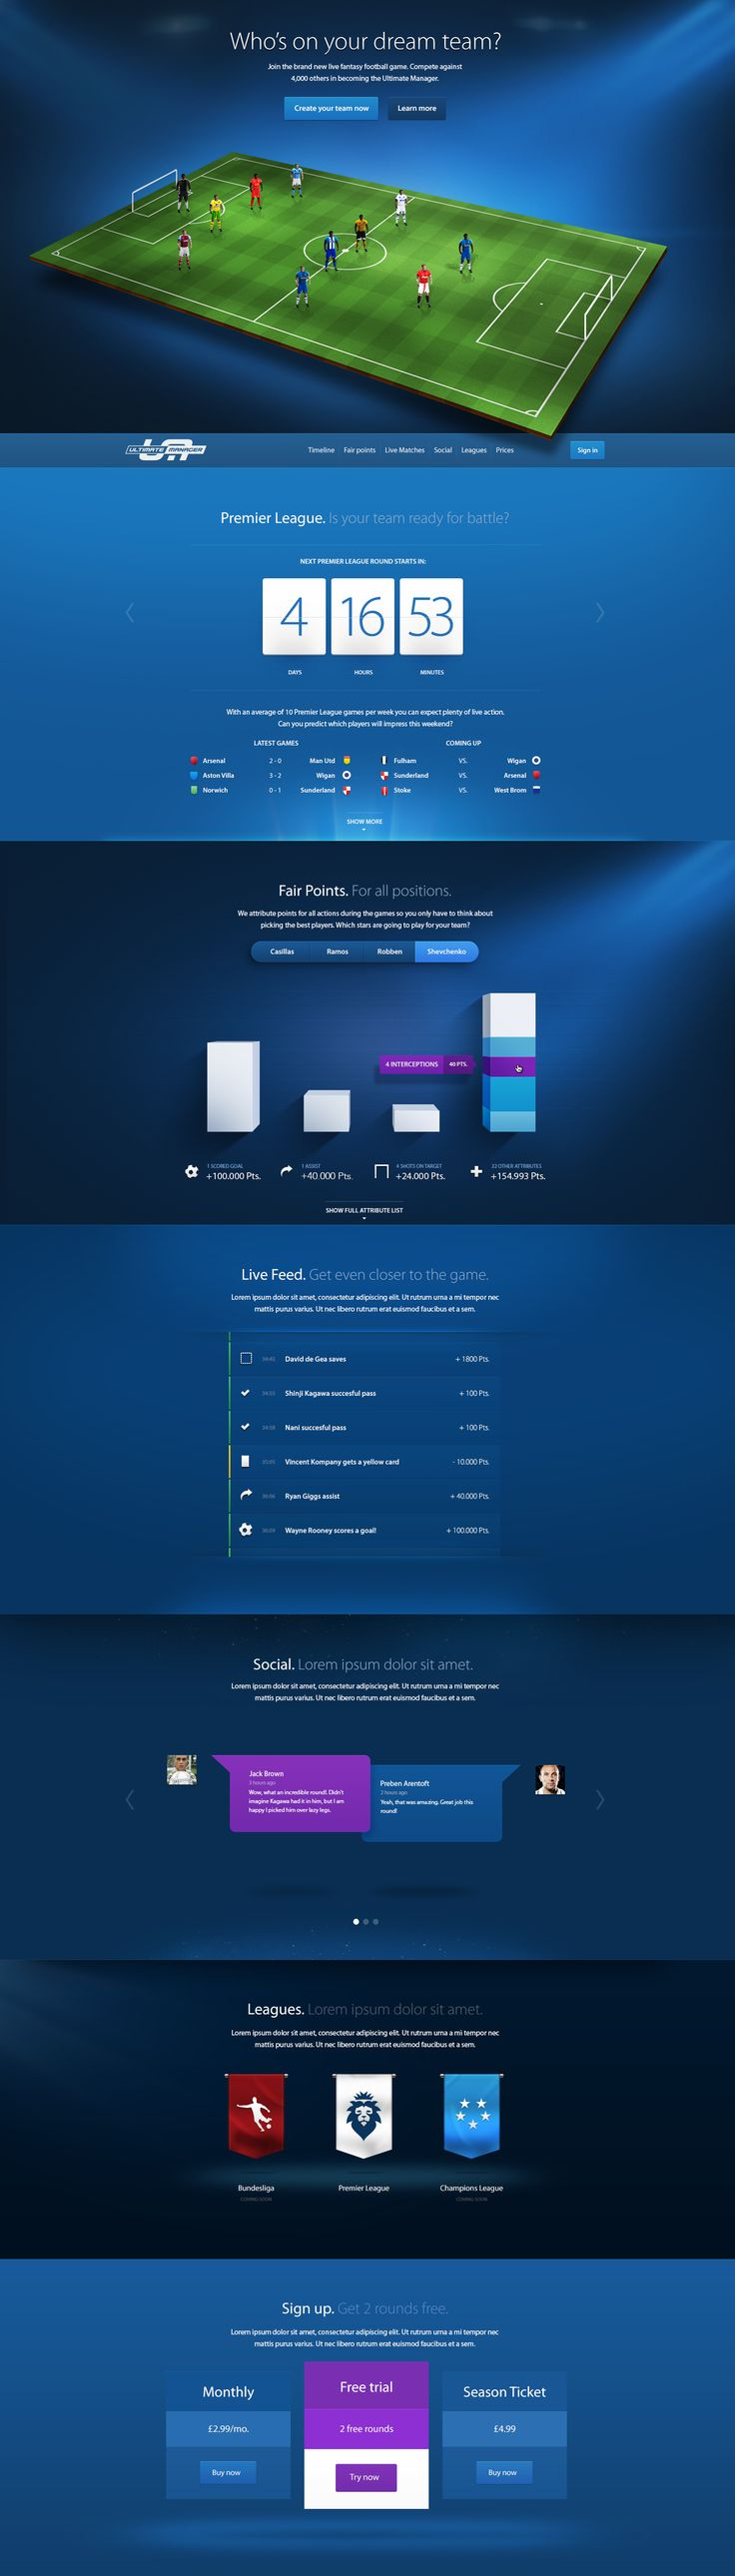 Cool Web Design on the Internet, Ultimate Manager. #webdesign #webdevelopment #website @ http://www.pinterest.com/alfredchong/web-design/